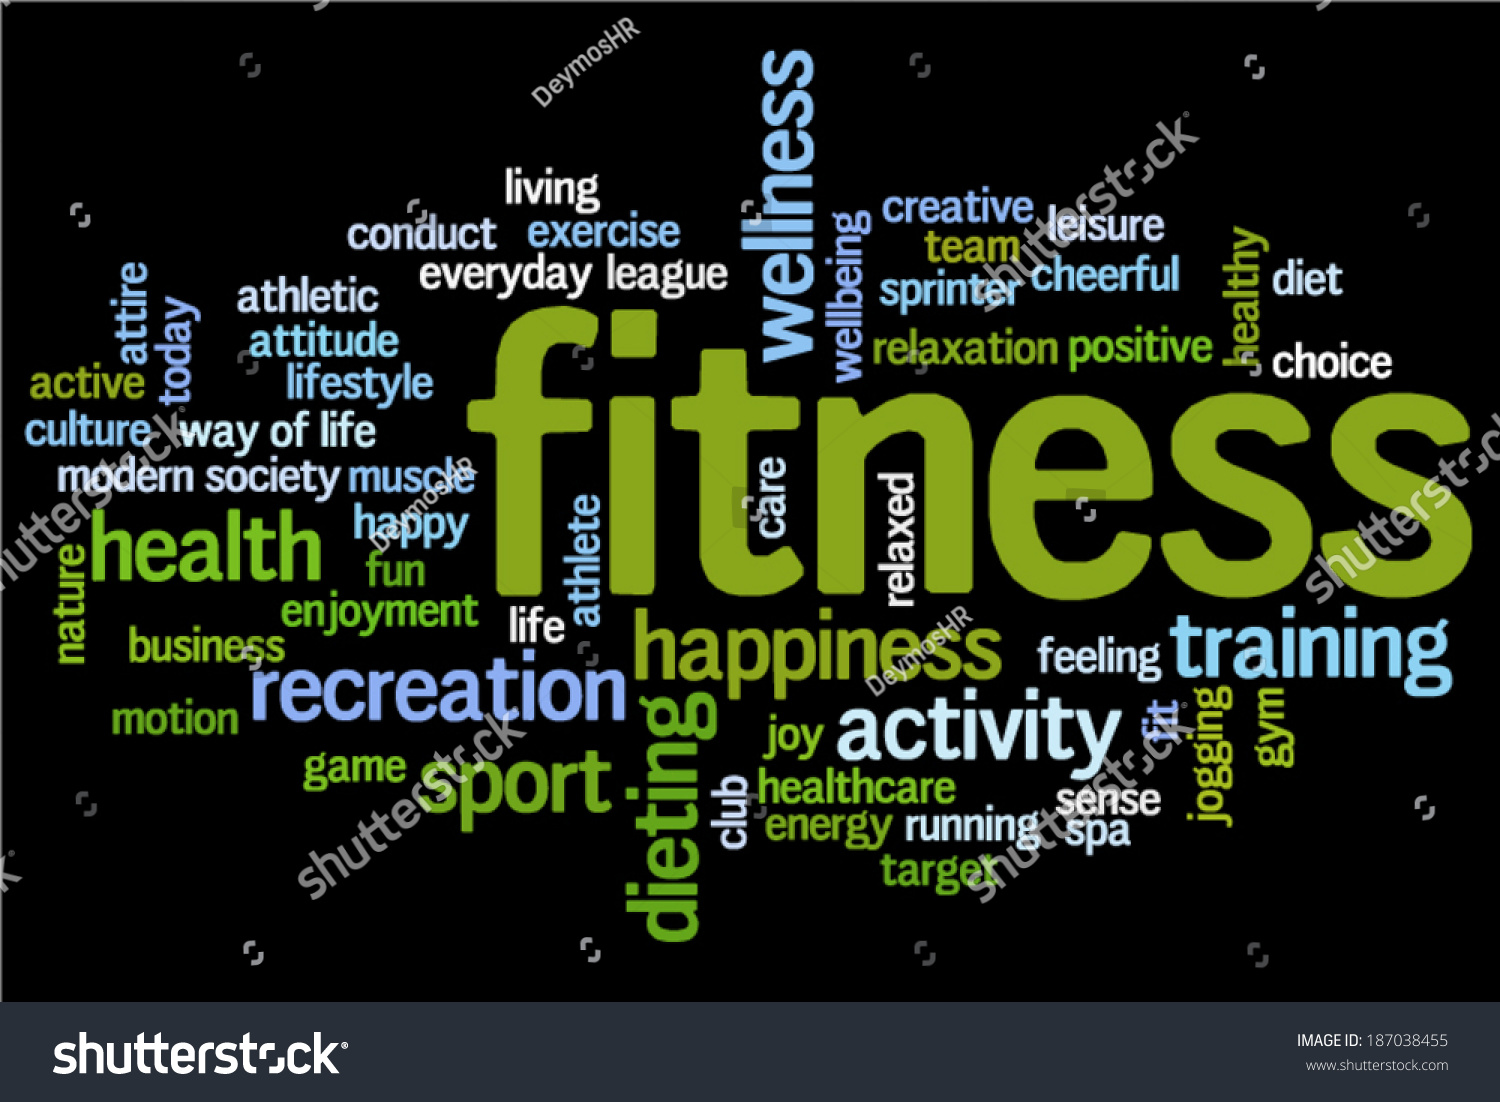 Sports Related Words Pictures To Pin